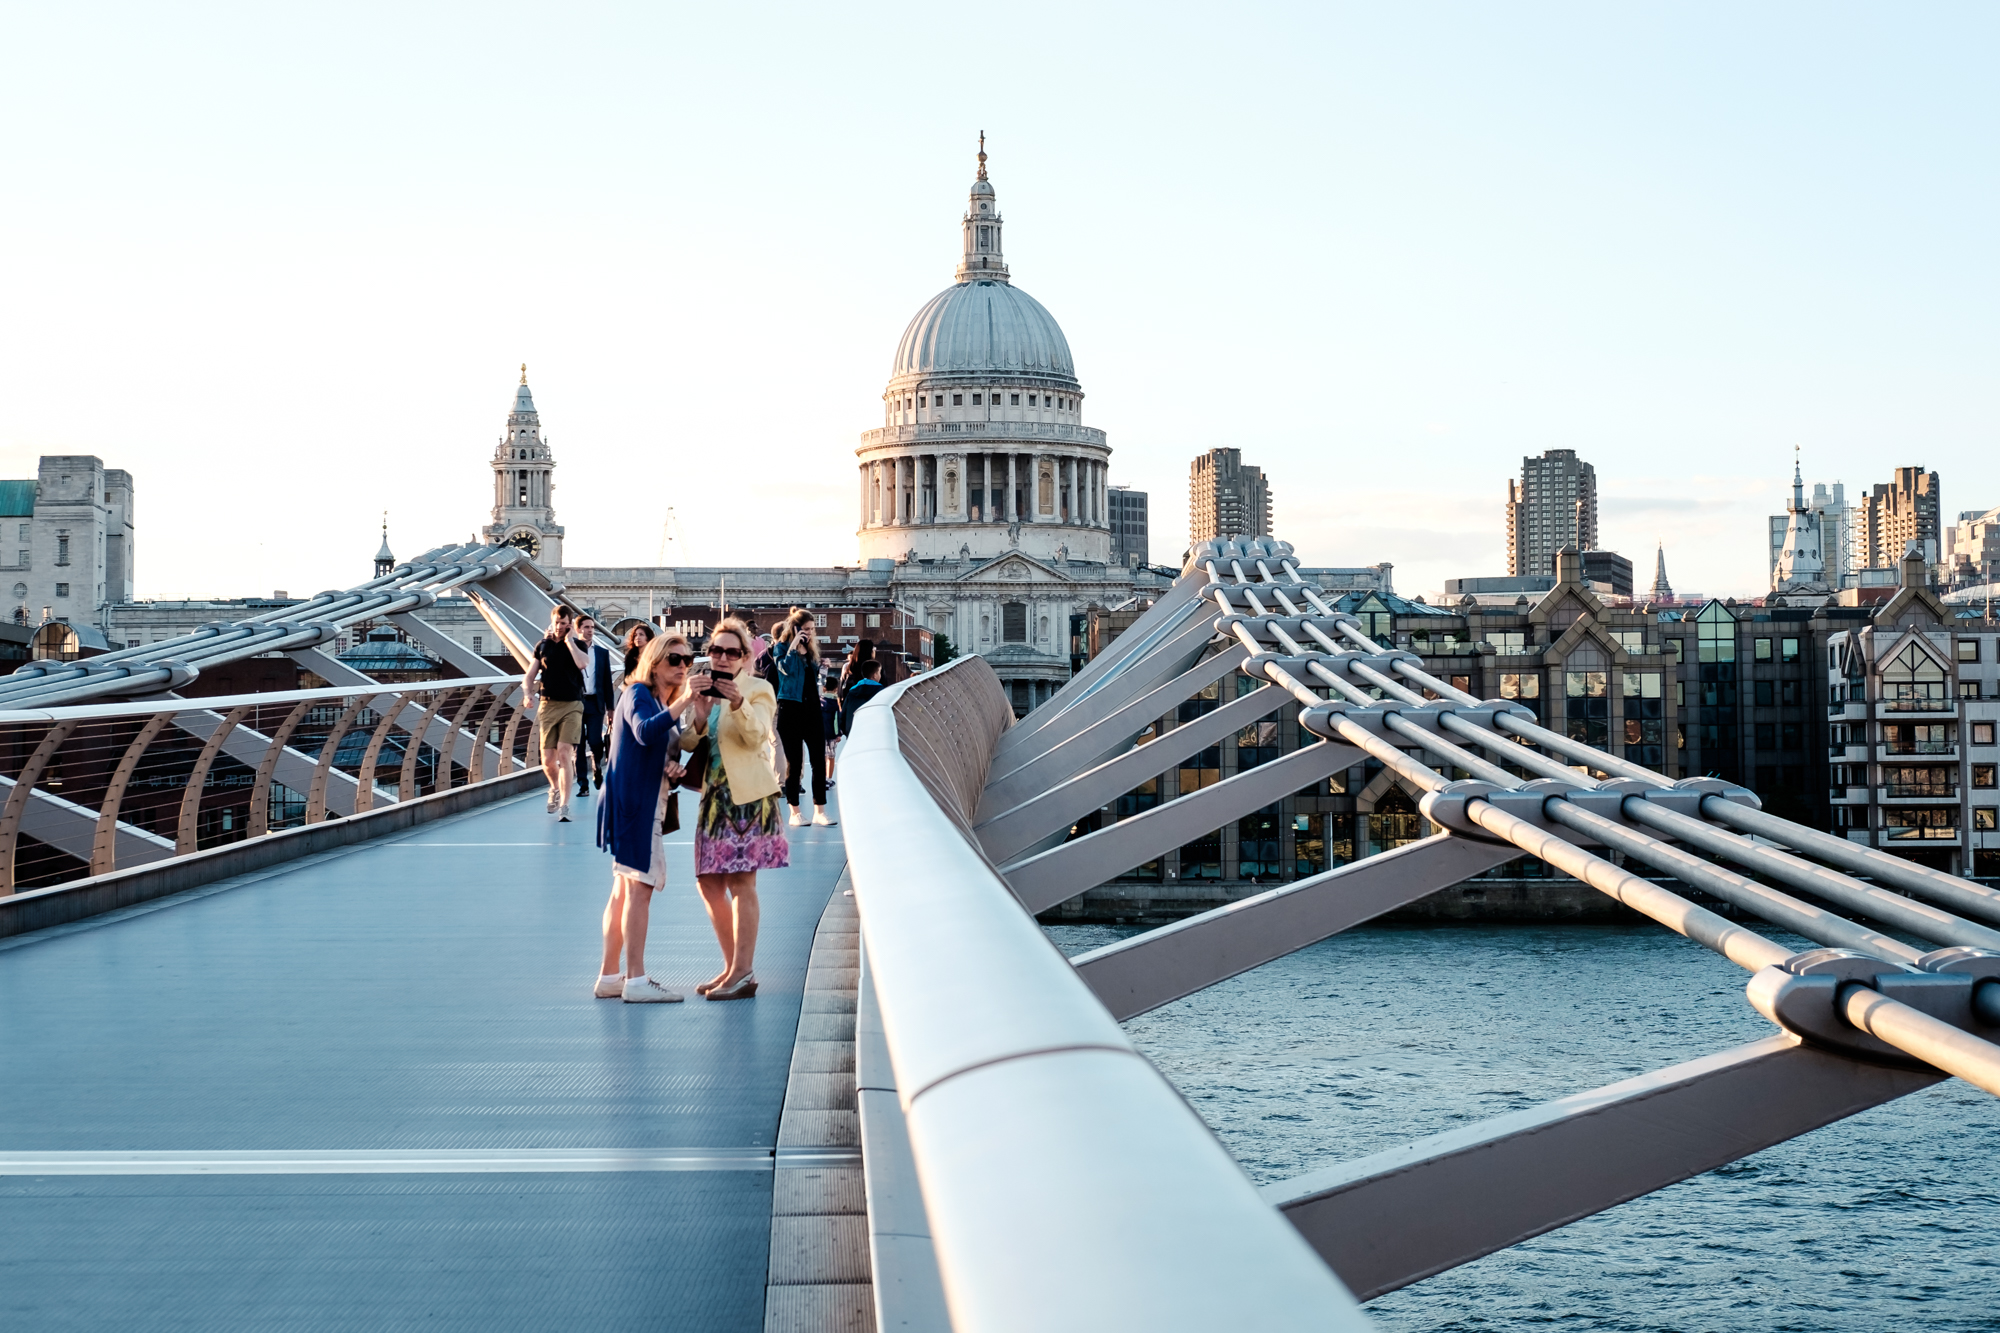 A photo of tourists taking selfies on the Millennium Bridge in London Chrome by Trevor Sherwin